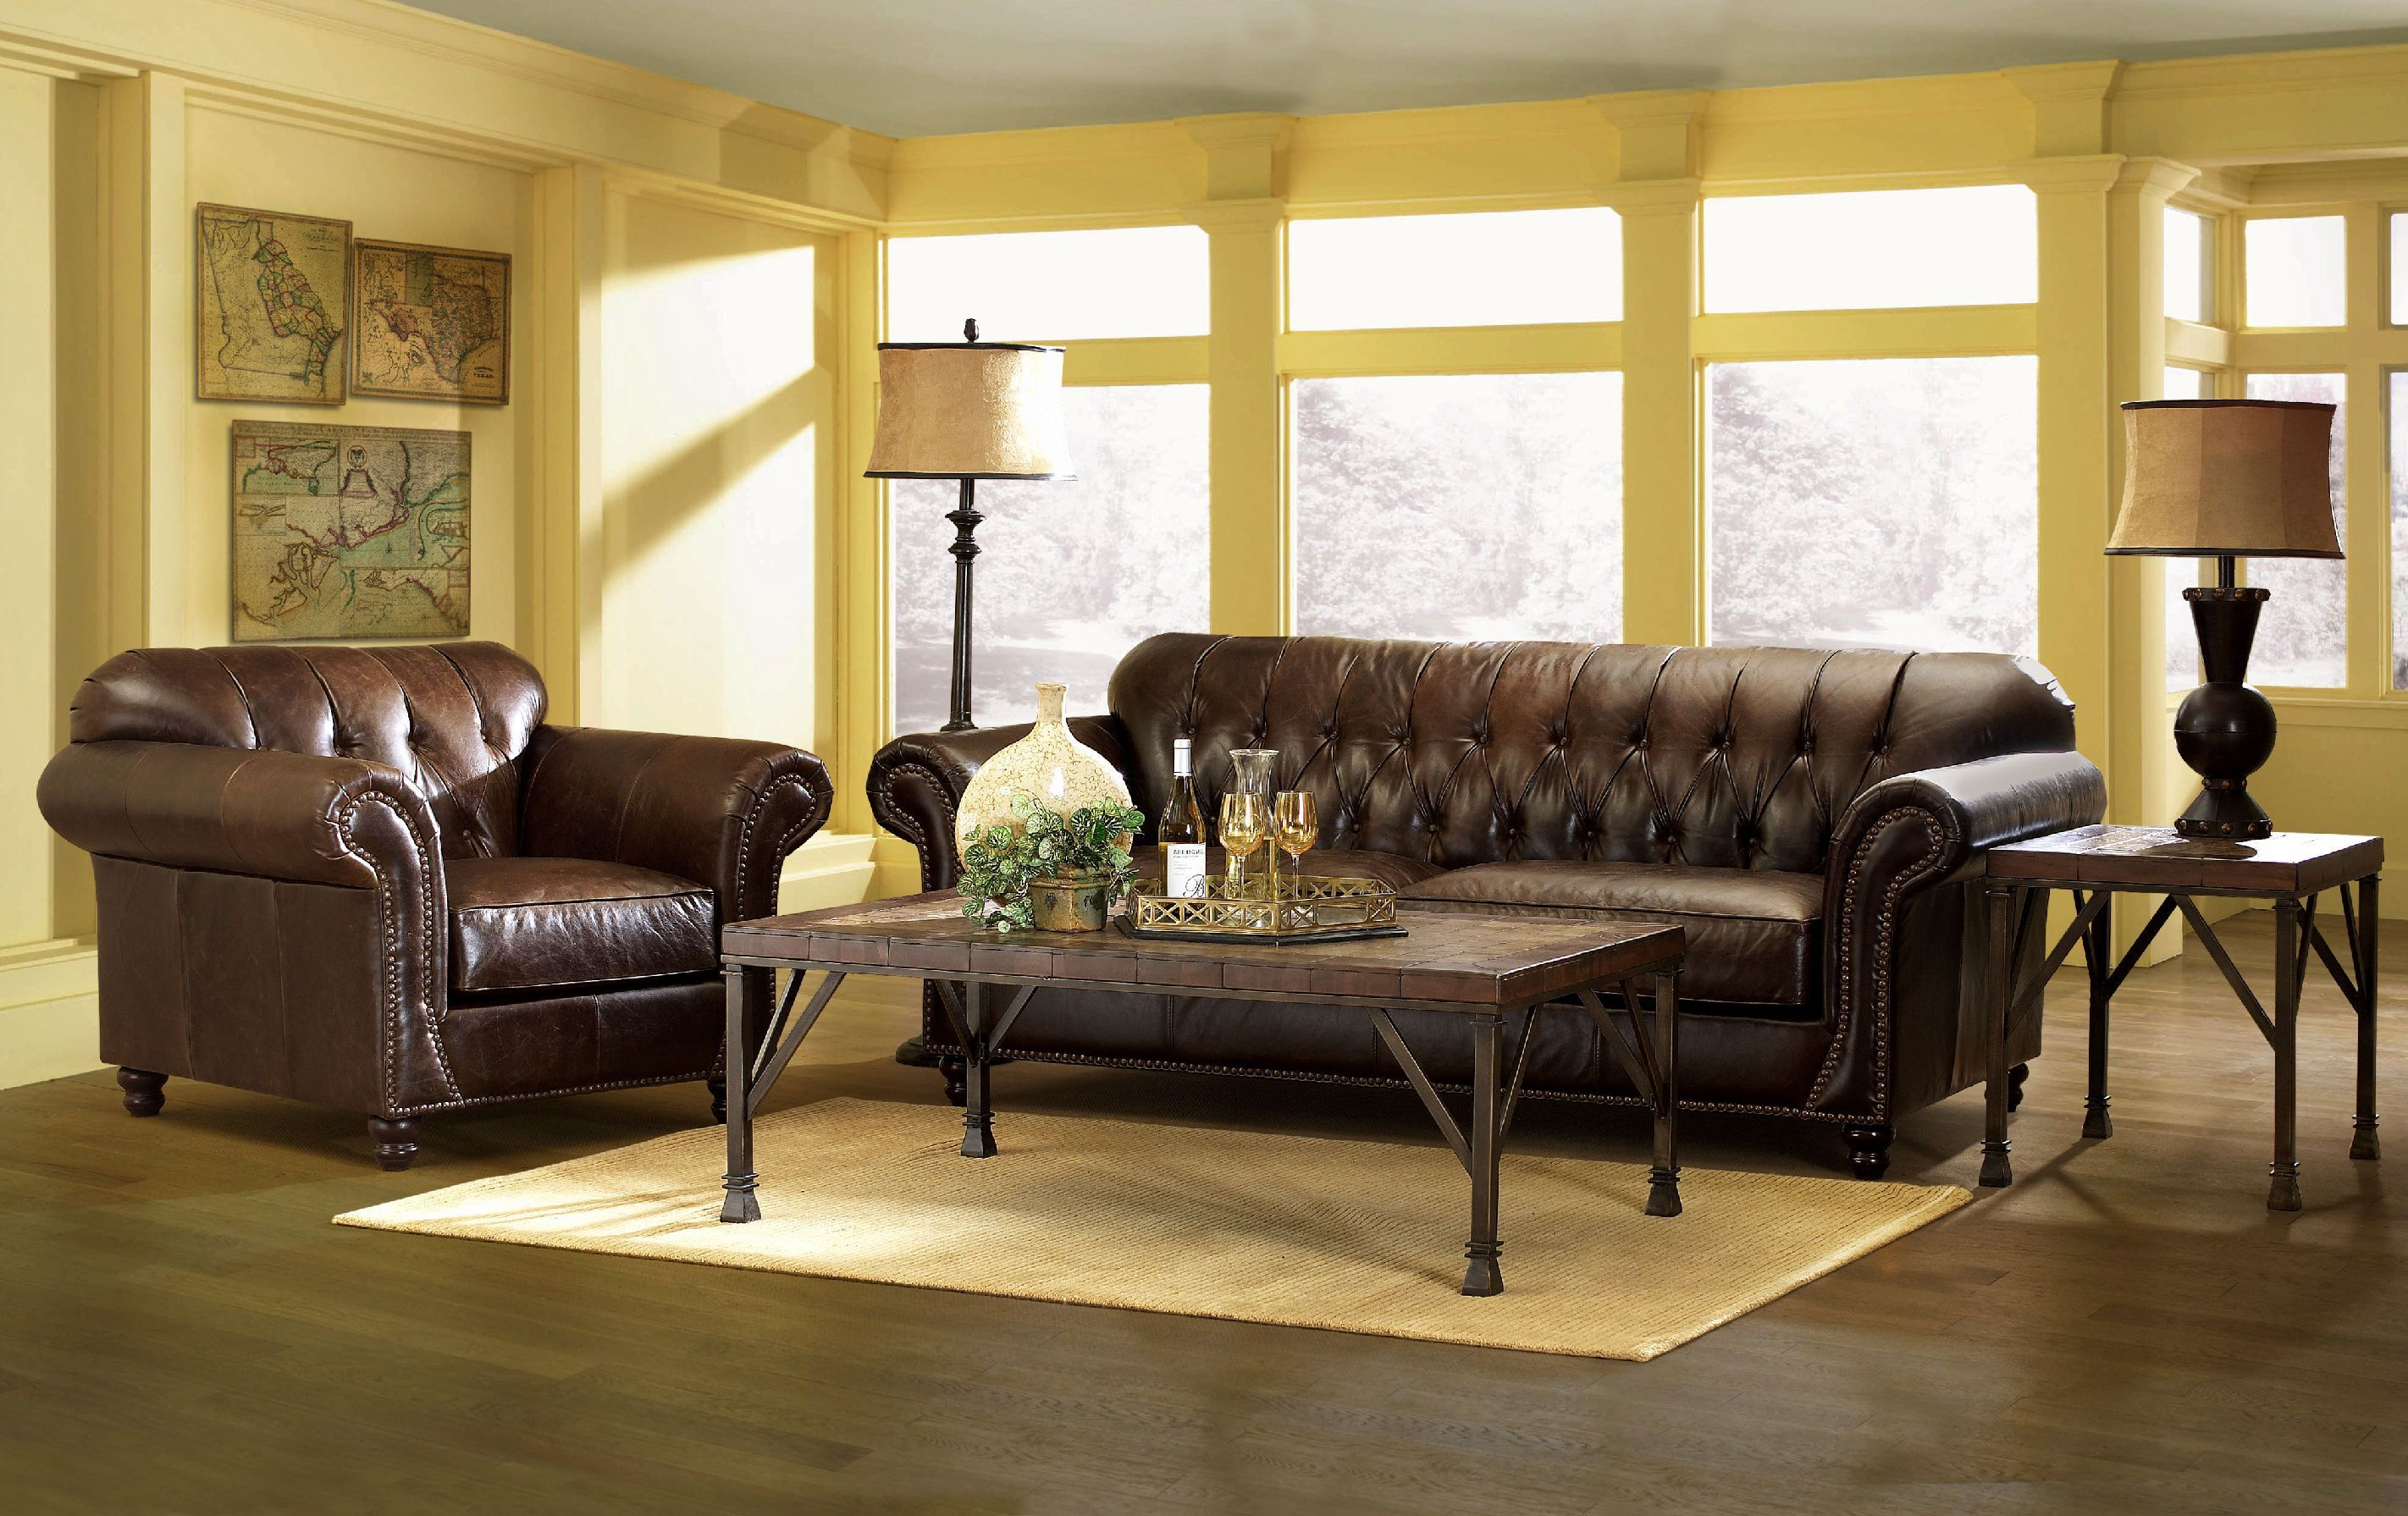 living room ideas with leather furniture | Rustic living ...